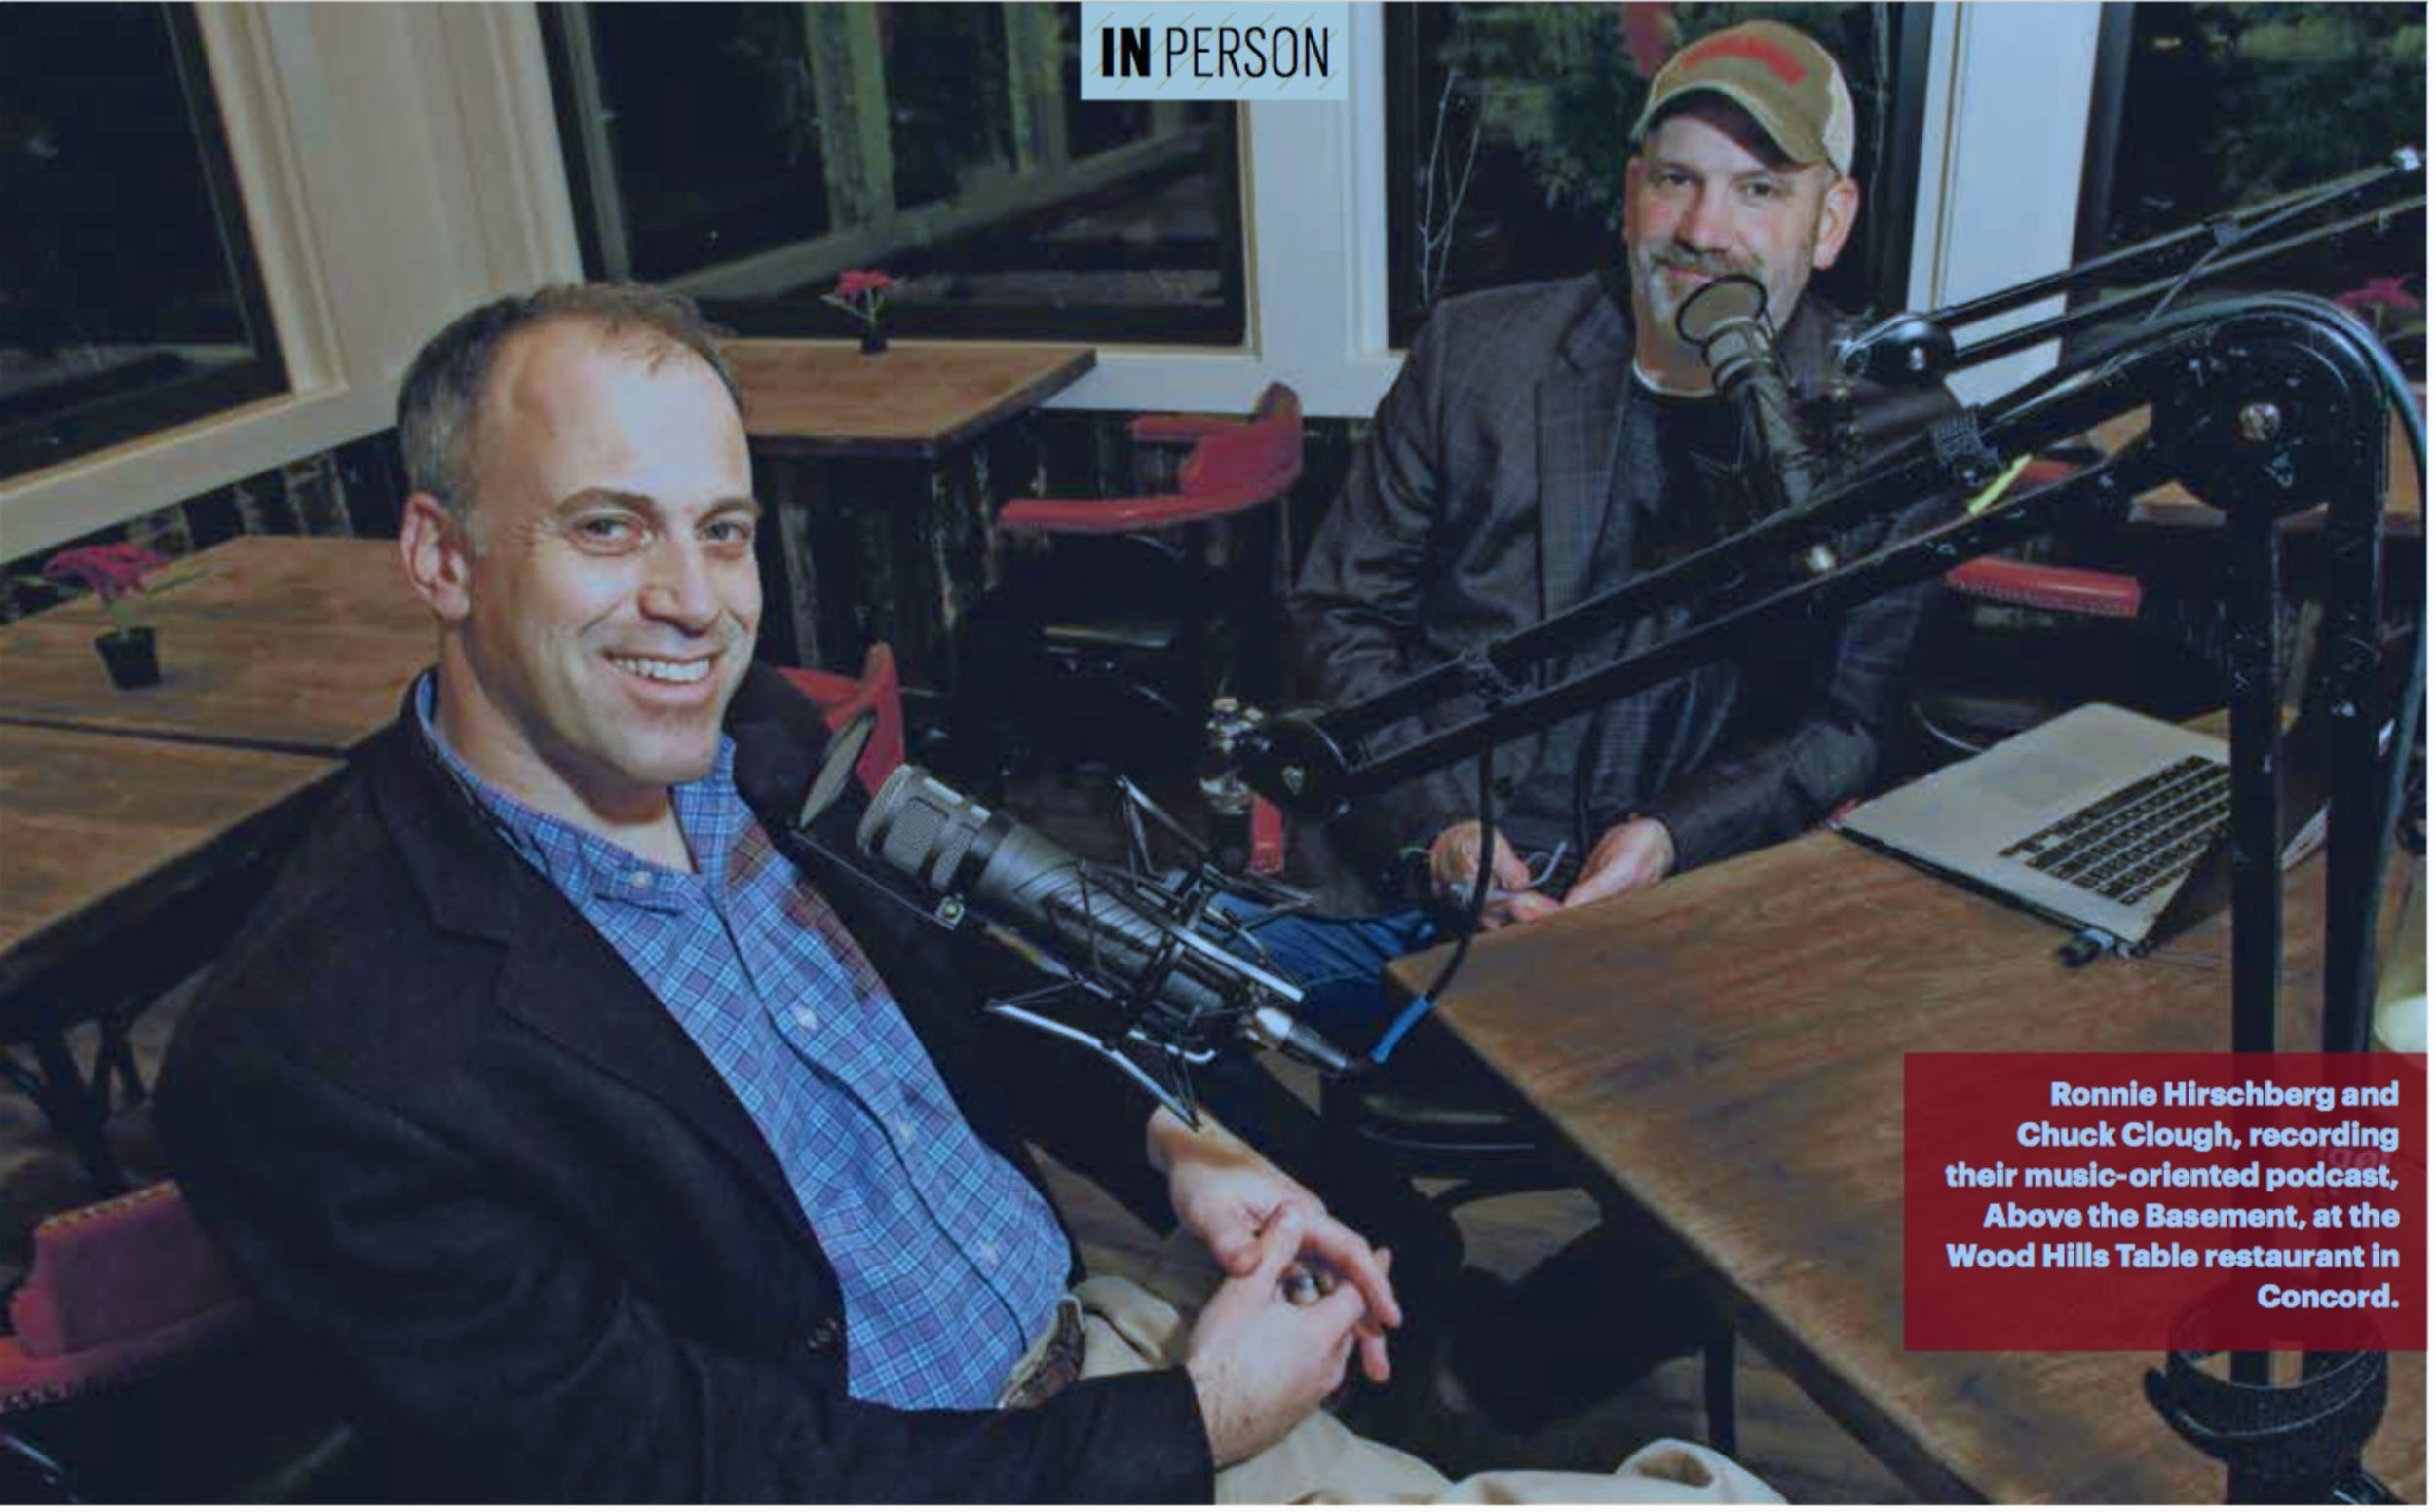 Plugged in: podcast from suburban dads… - Boston Business Journal - December 27, 2018